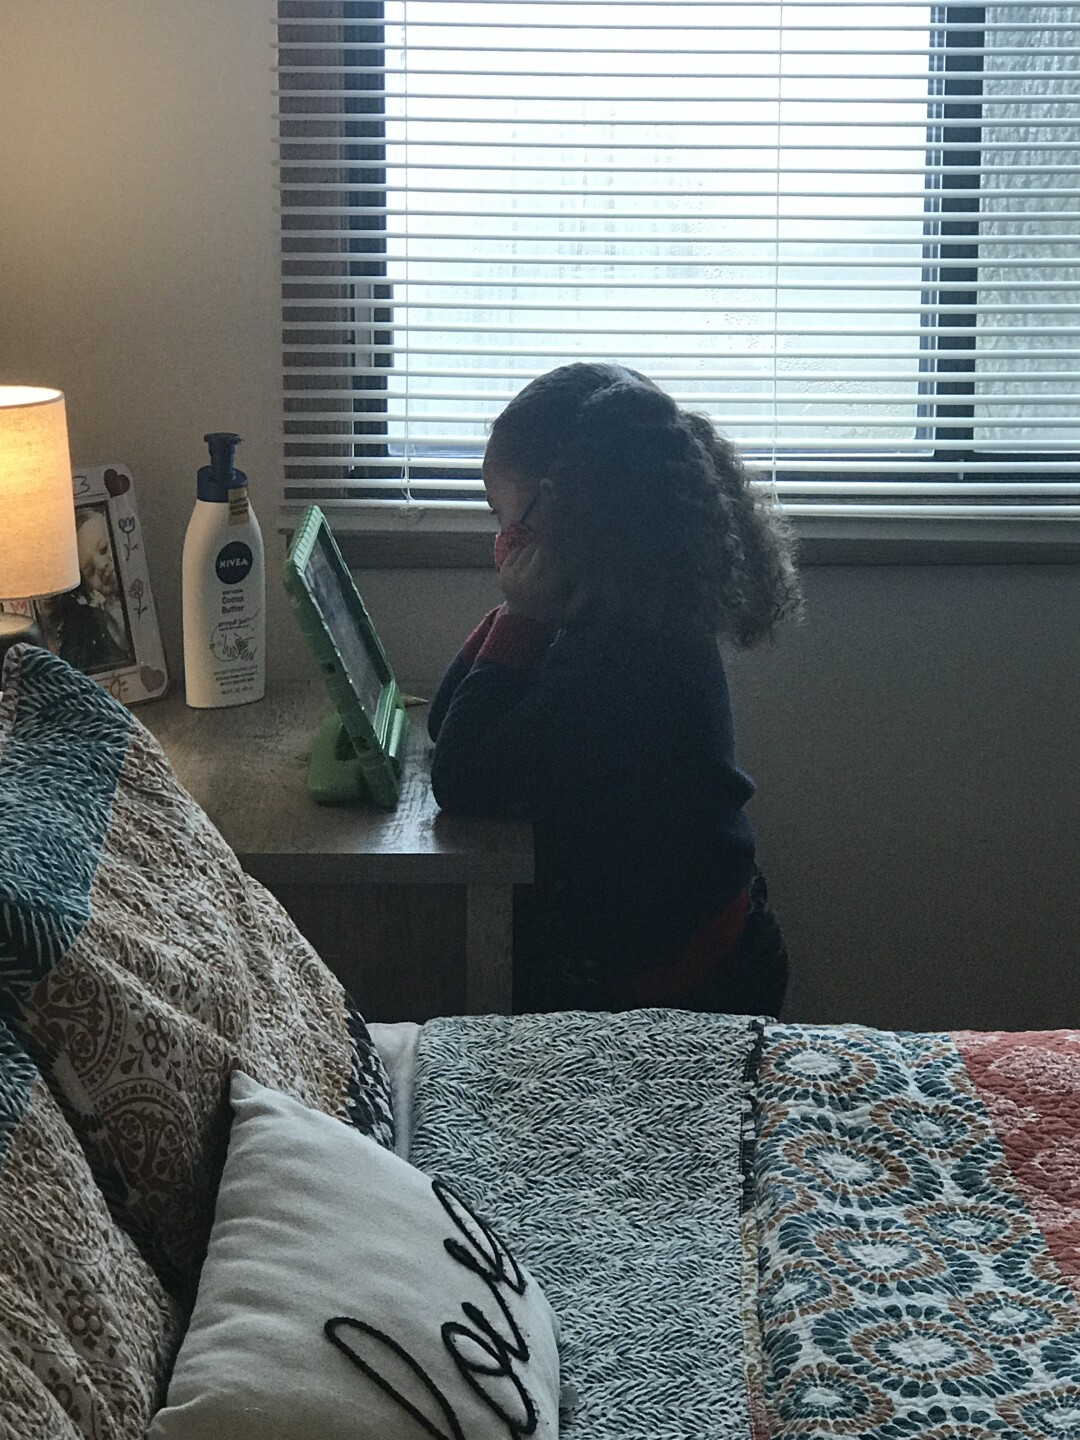 Brielle attends virtual class in her mom's room. The little bit of separation allows for Nicole to be able to concentrate as she is teaching.